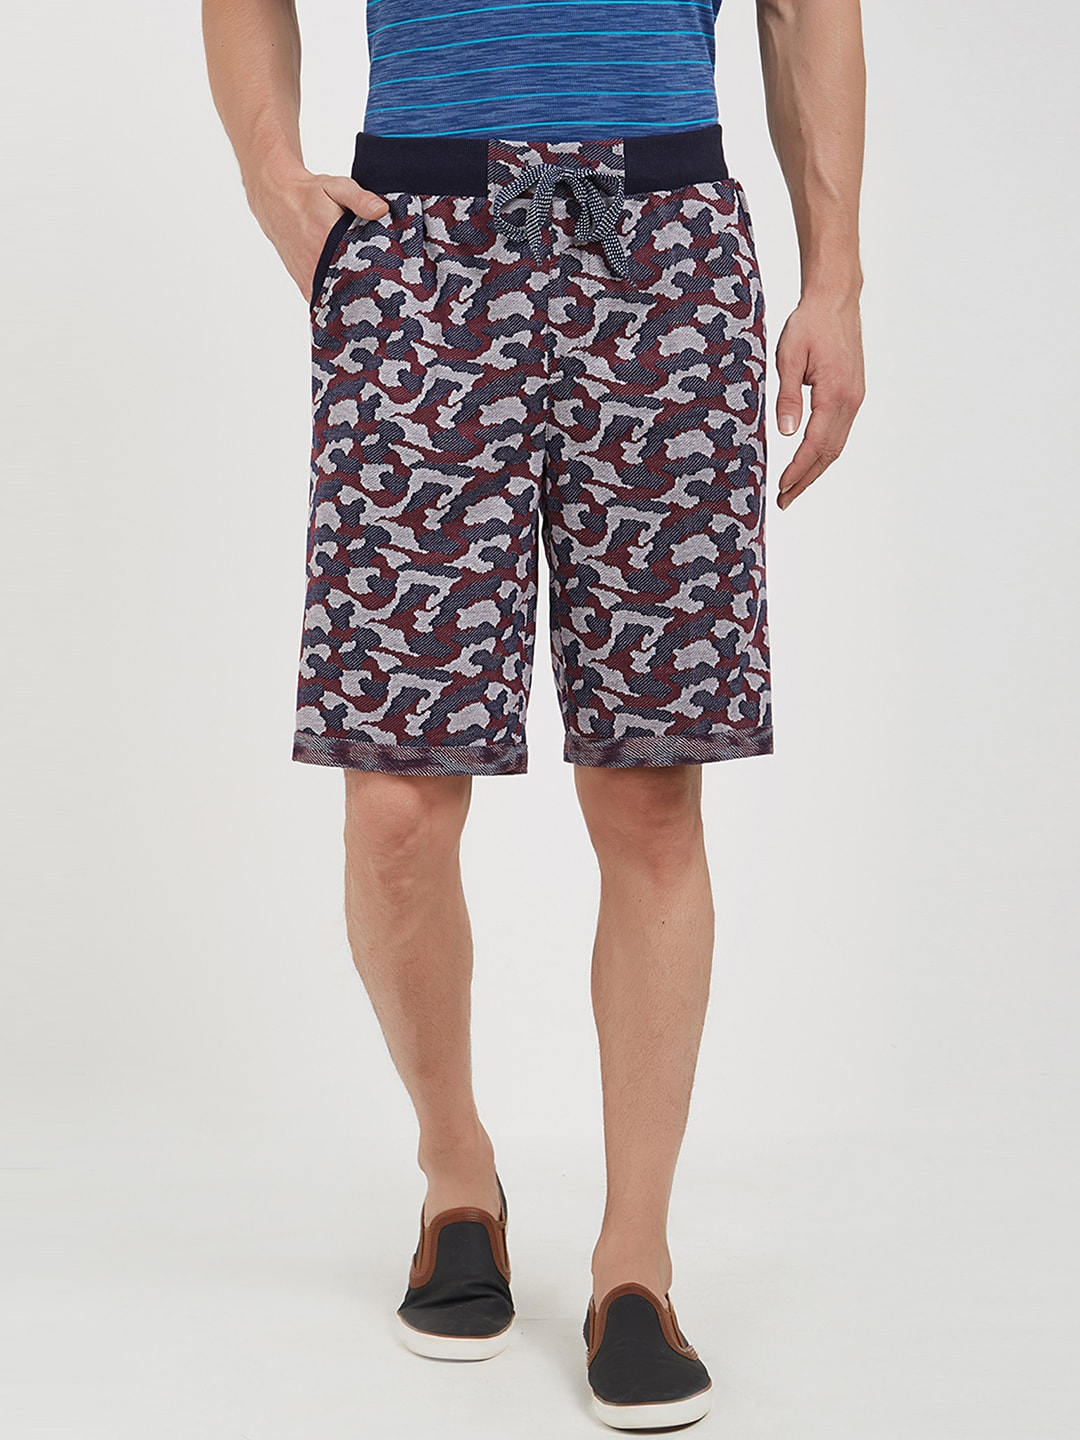 Men Camouflage Shorts - Buy Men Camouflage Shorts online in India e3aac5f2db3